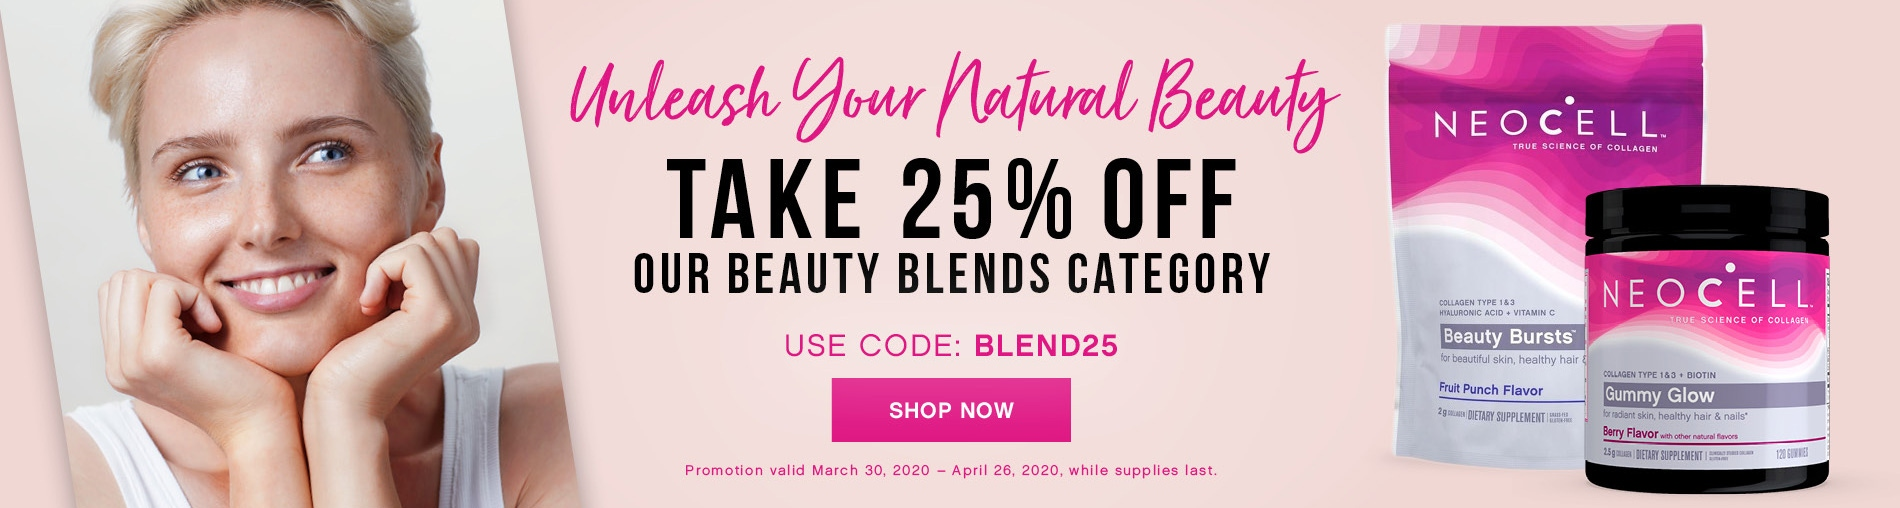 Unleash Your Natural Beauty! Take 25% OFF Our Beauty Blends Category. Use Code BLEND25. Shop Now!